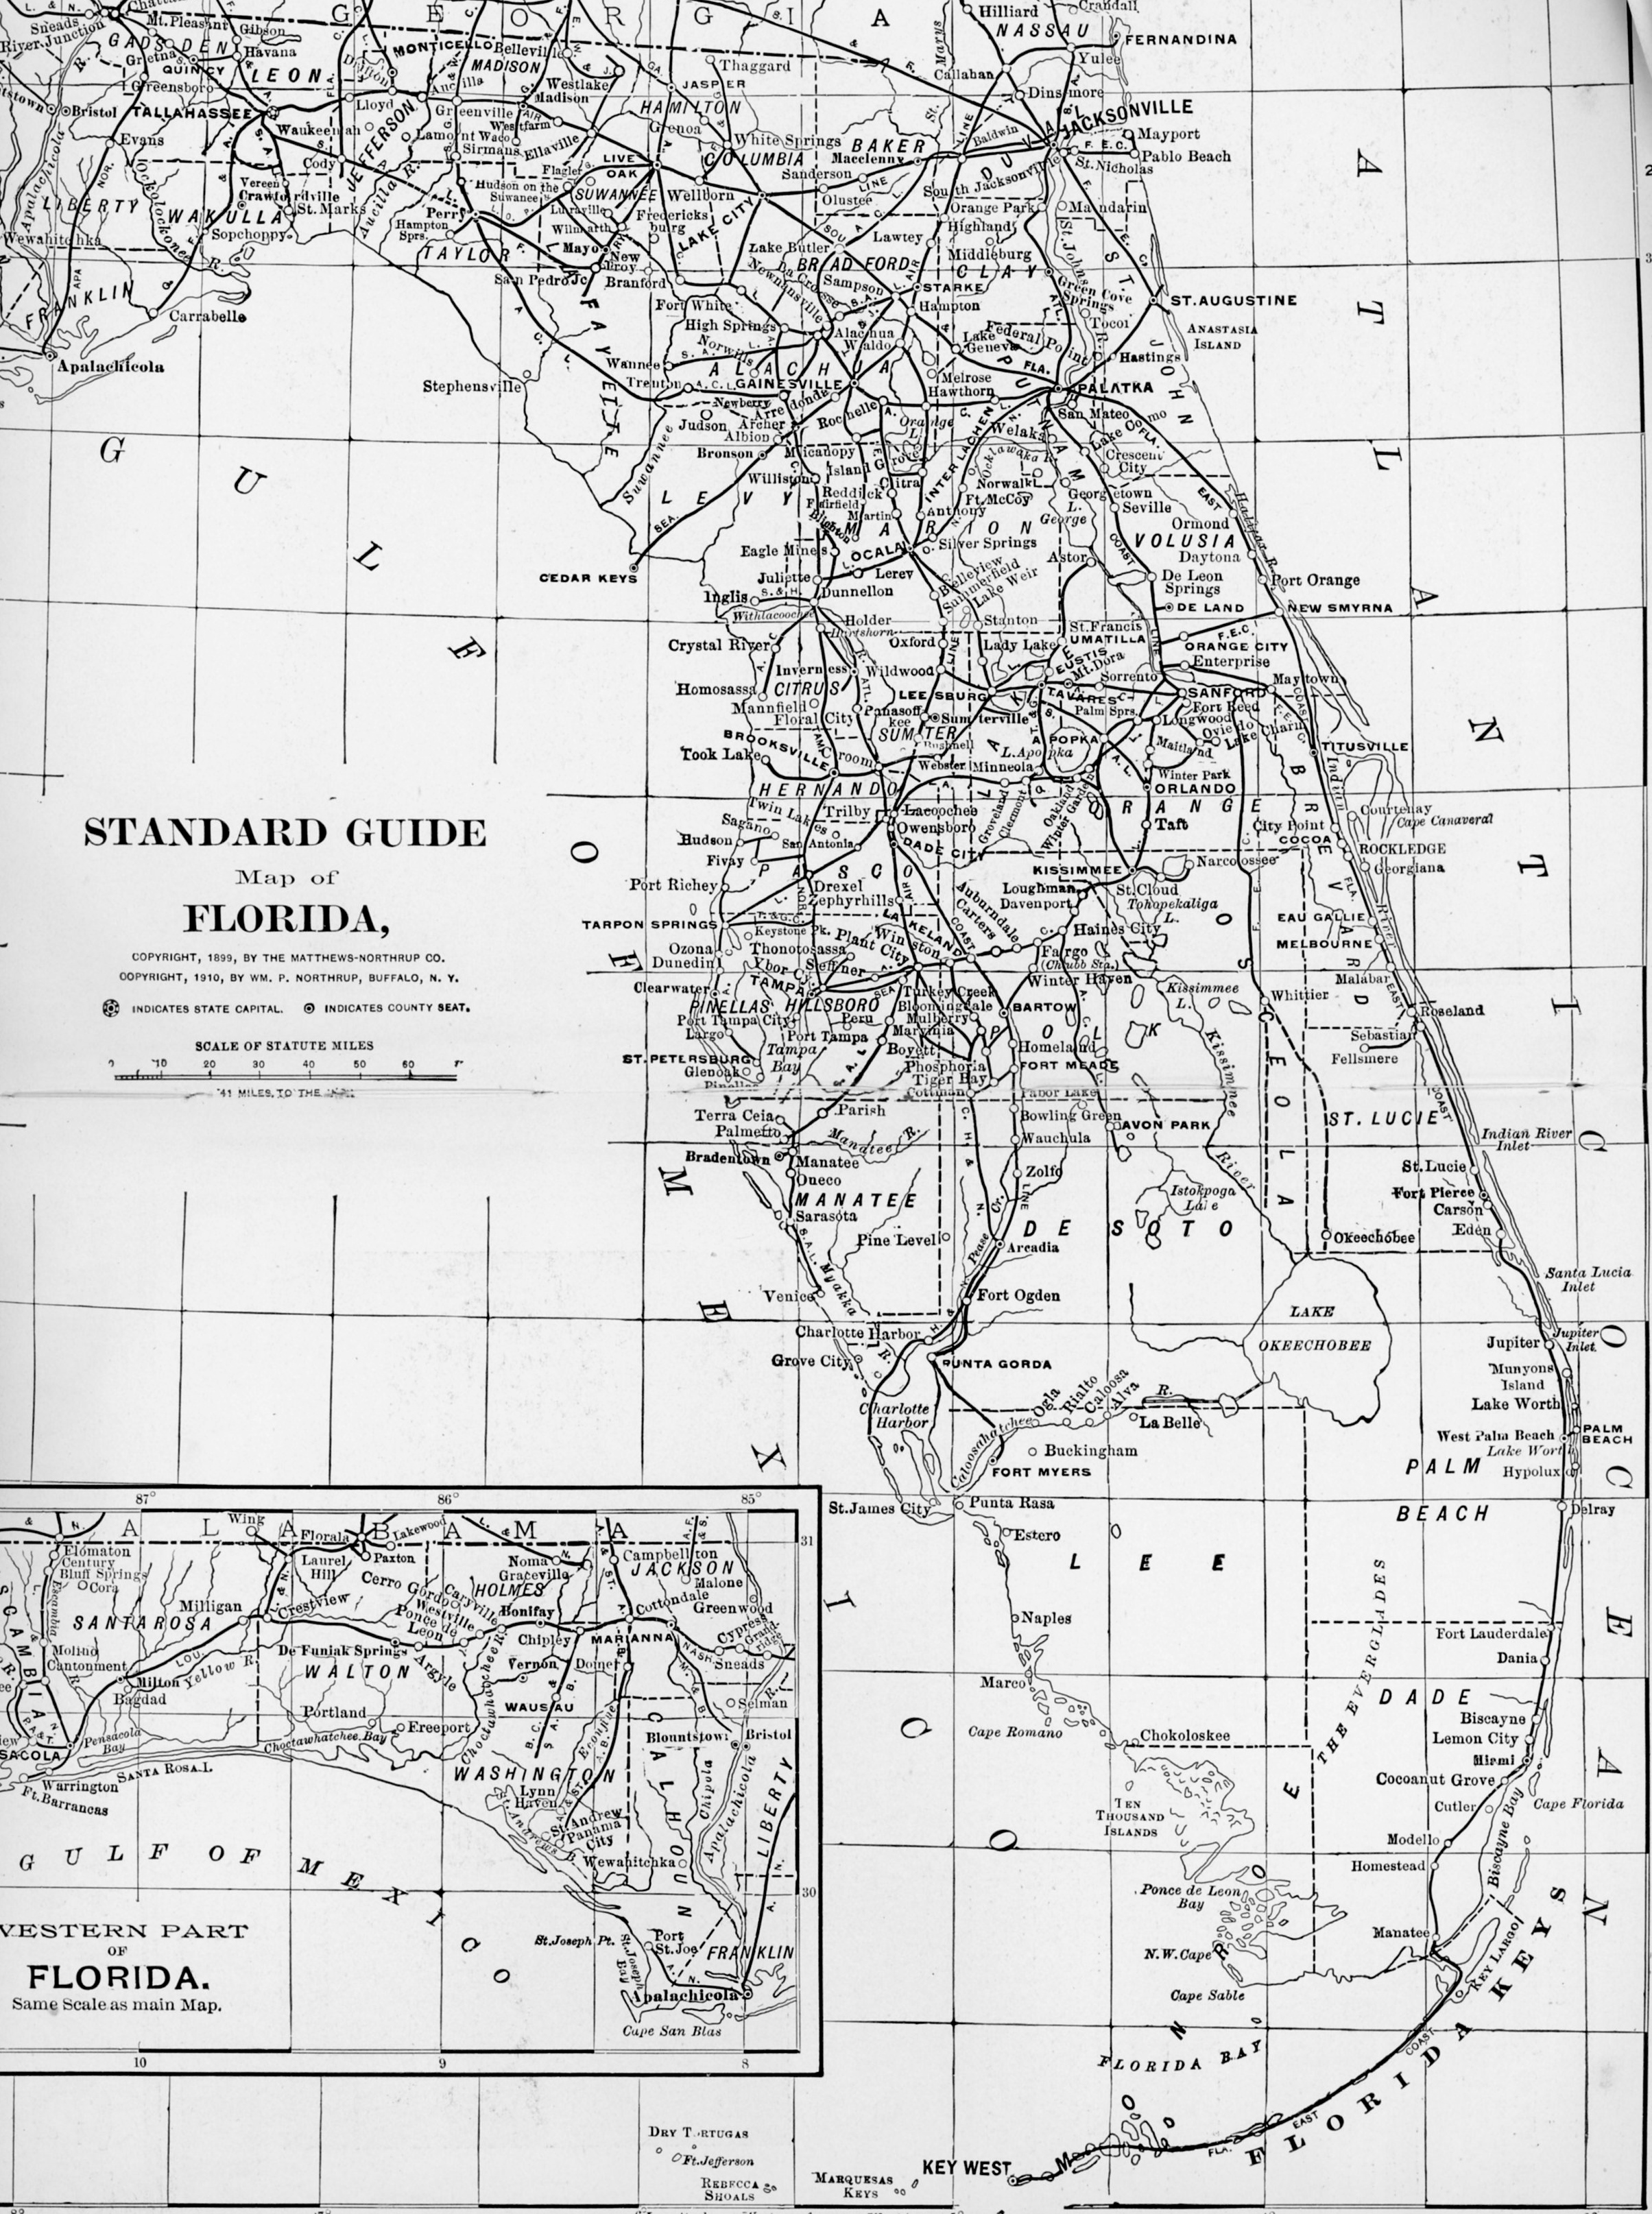 studying old maps and new maps Florida | Jacqui Thurlow-Lippisch